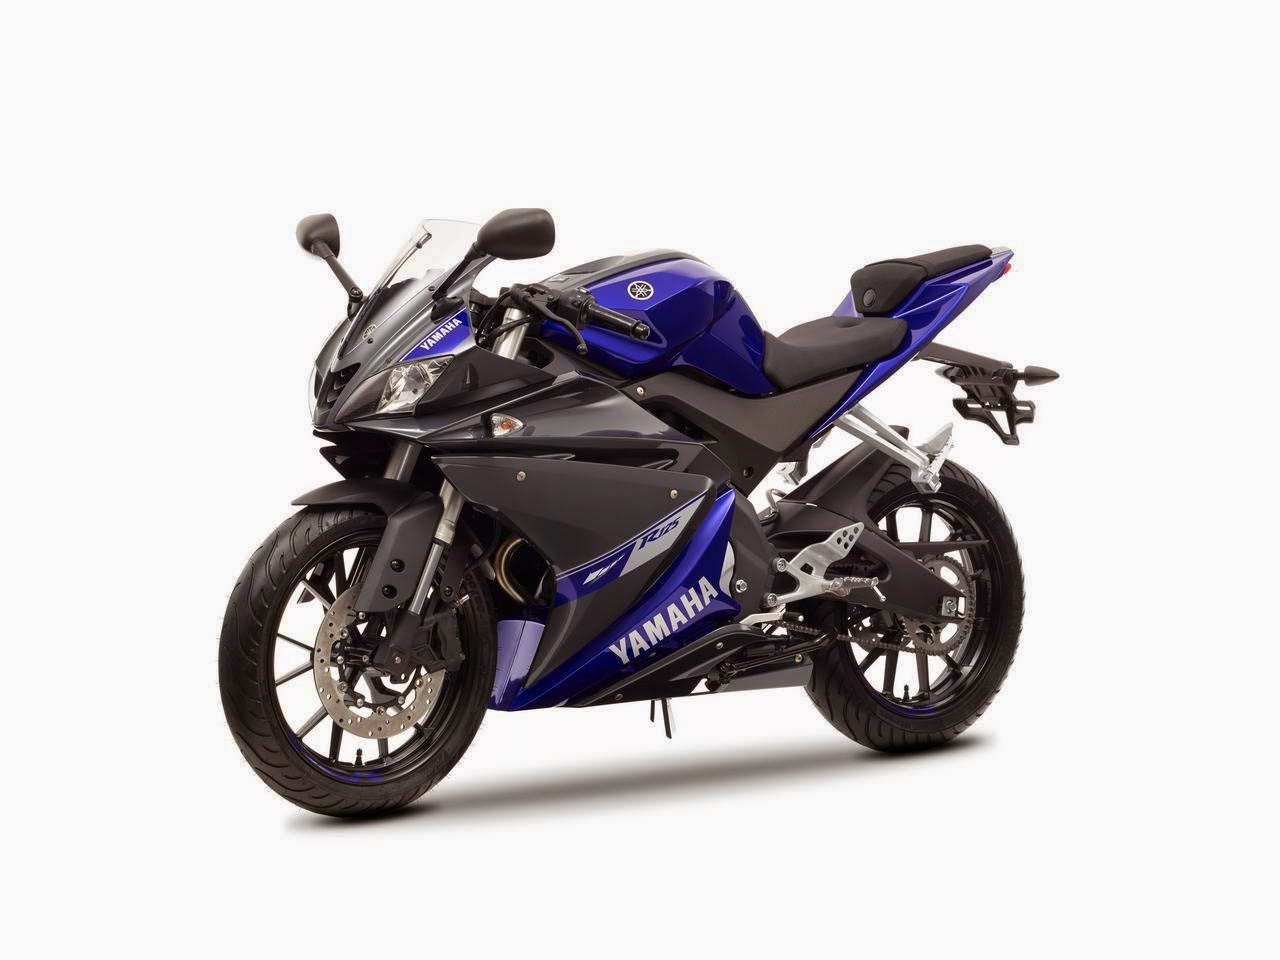 2015 upcoming bike of yamaha yzf r125 bike car art. Black Bedroom Furniture Sets. Home Design Ideas